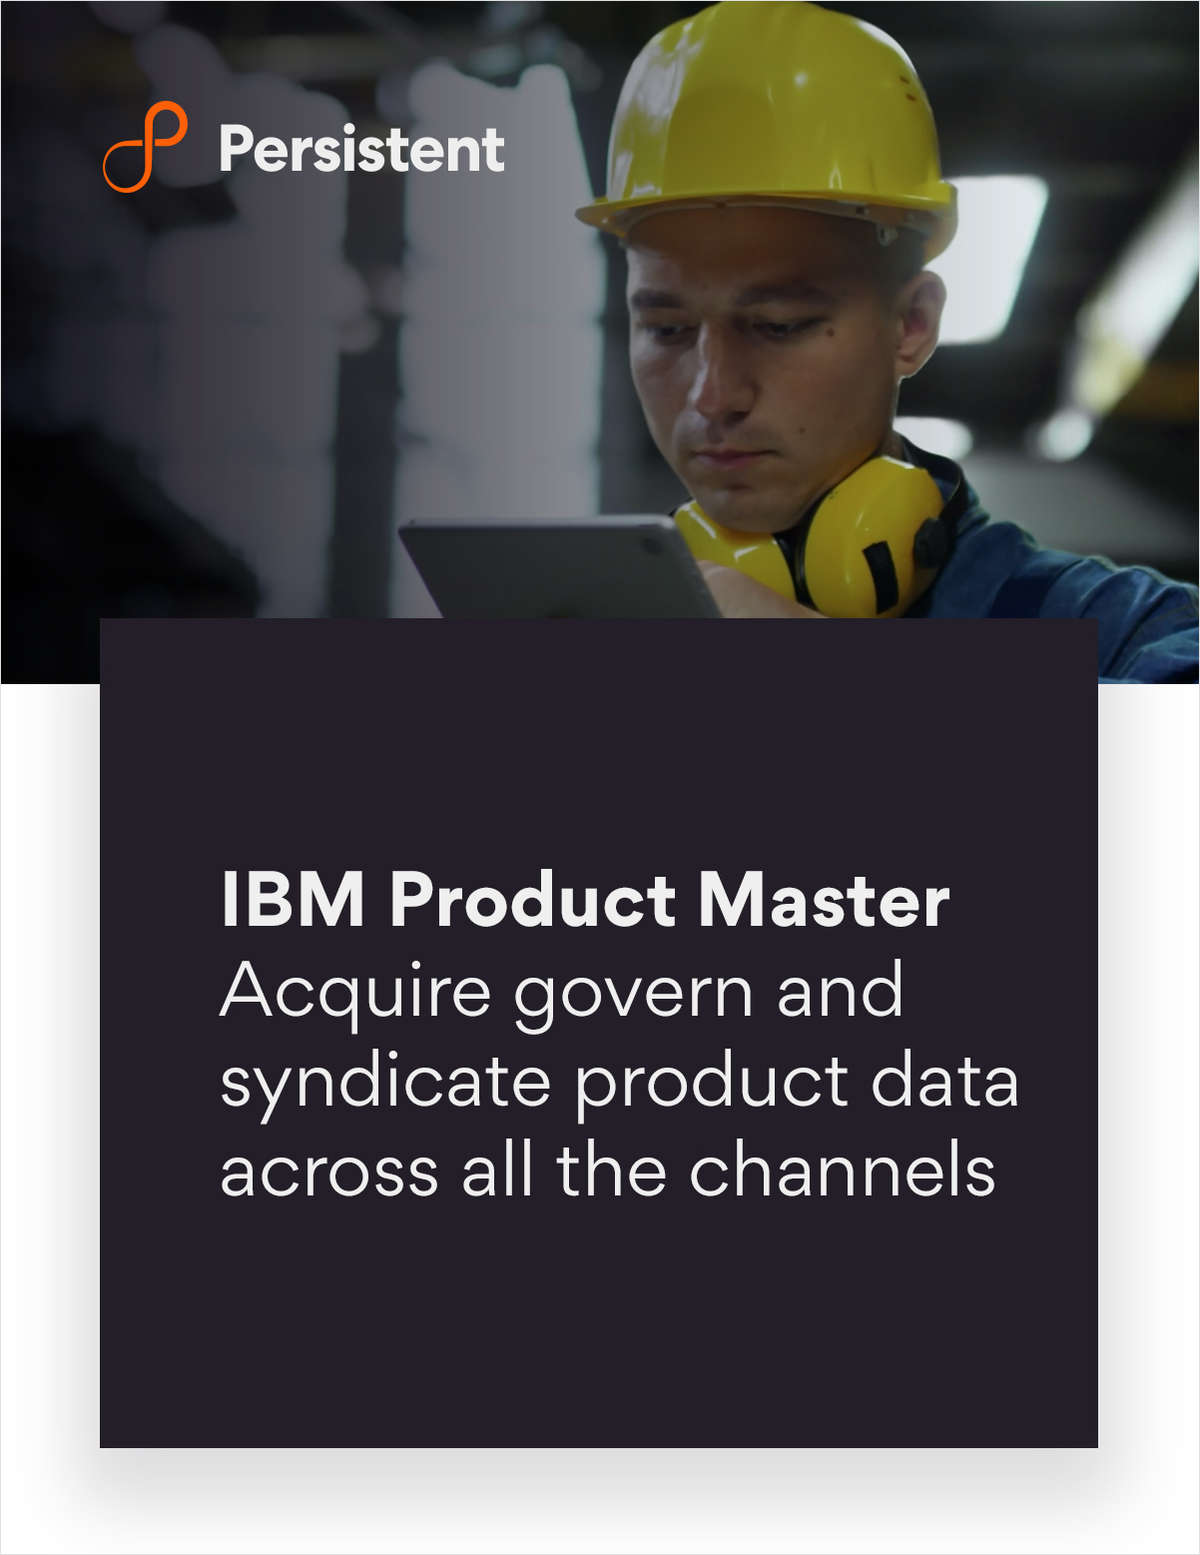 IBM Product Master - Manufacturing Demo